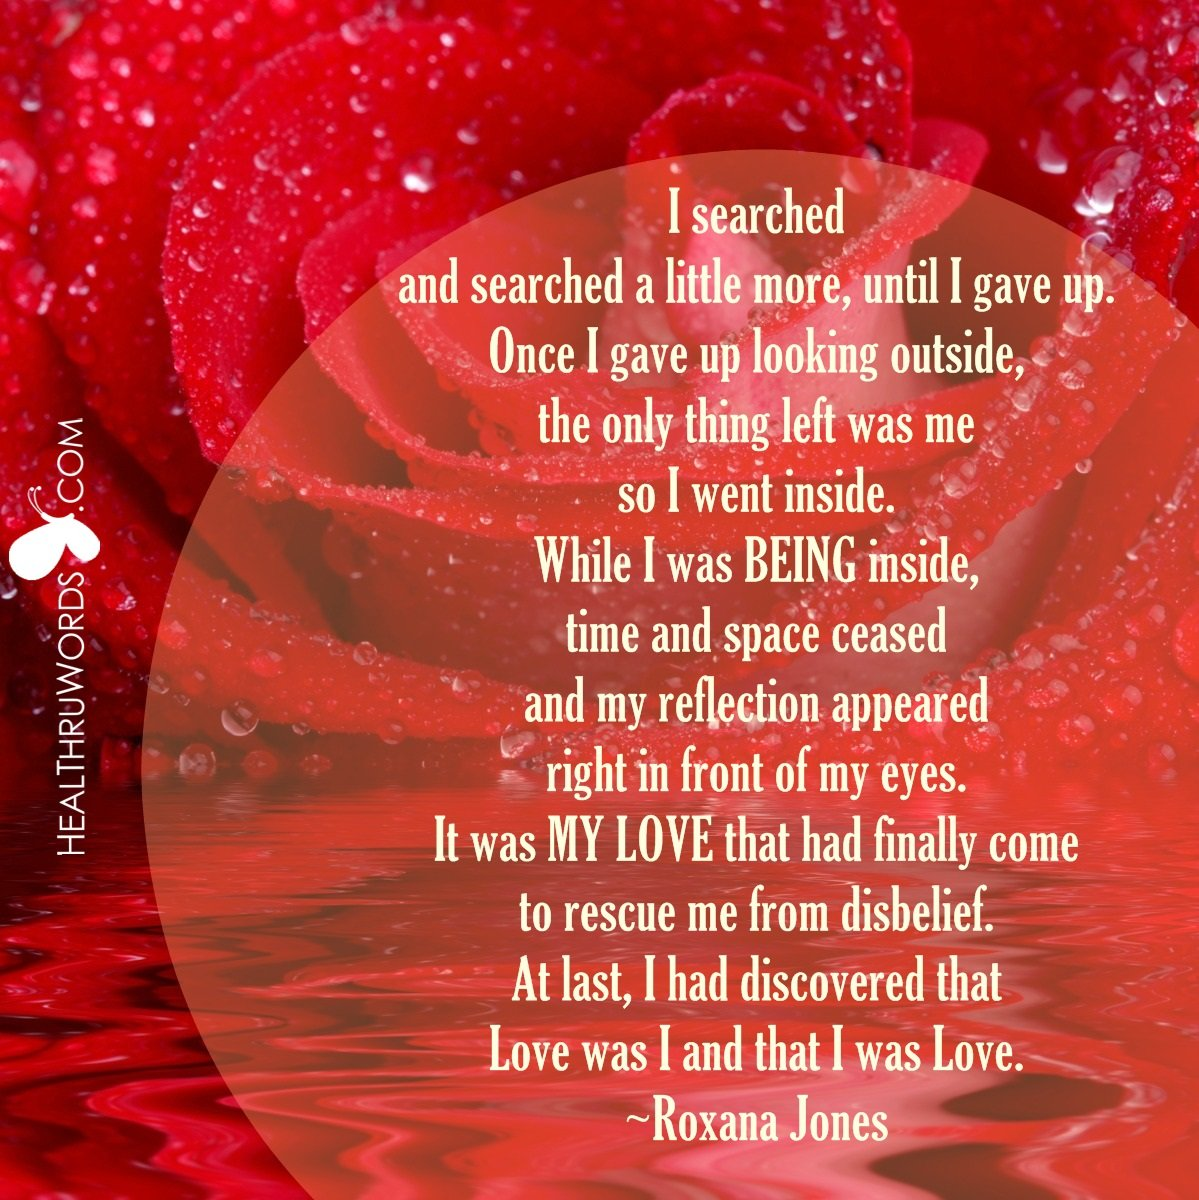 Inspirational Image: The I in Love